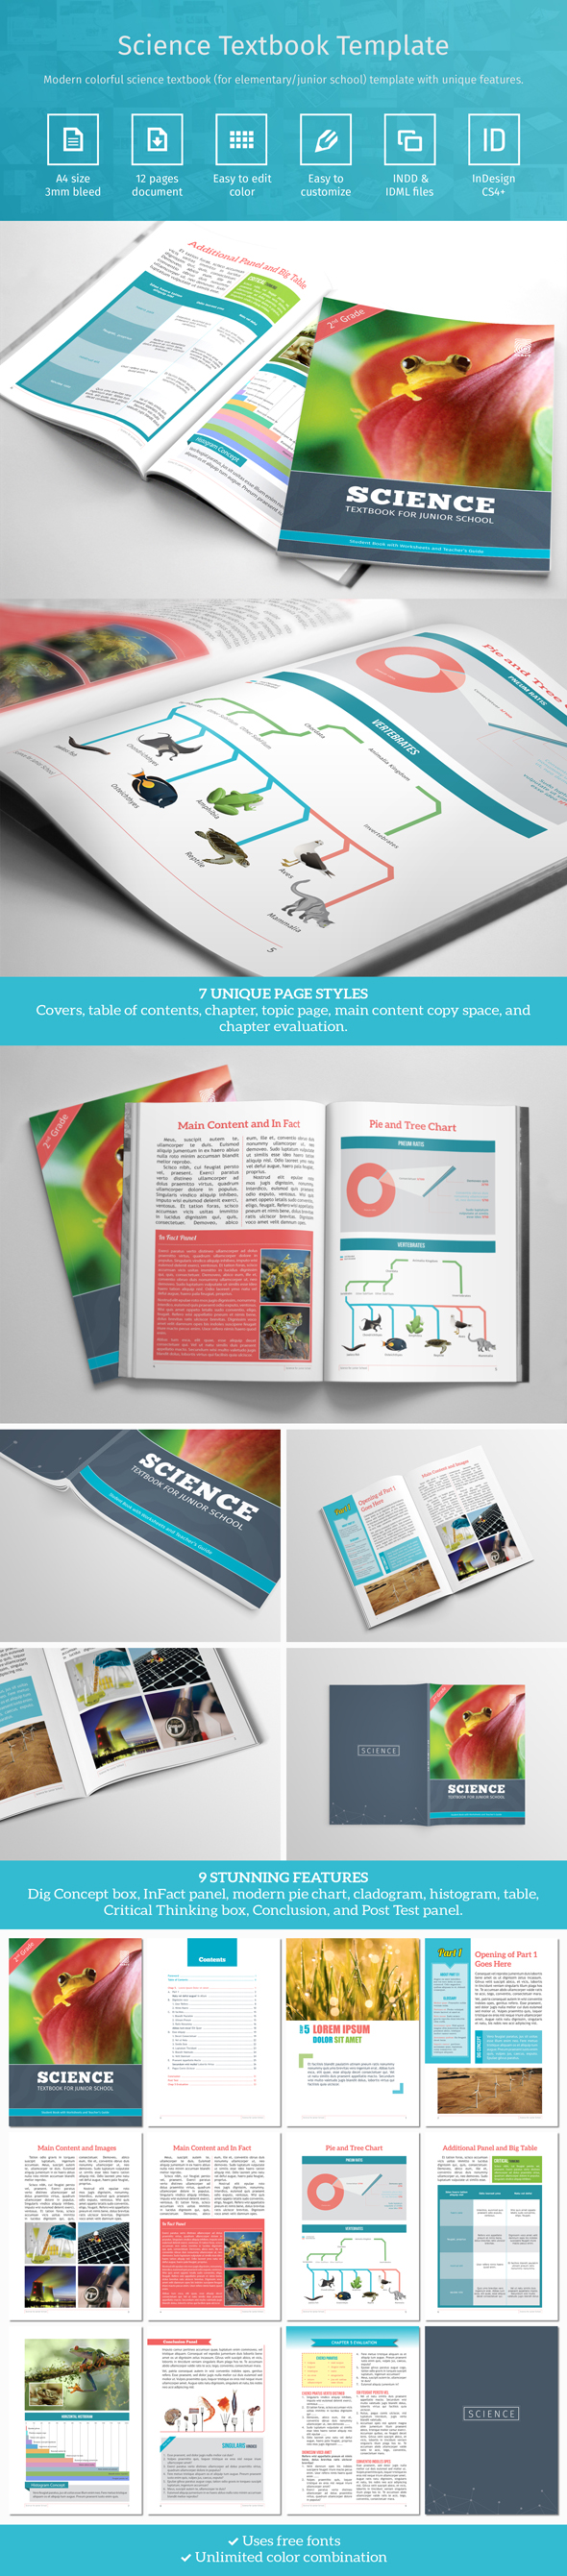 Modern colorful science textbook template create with Adobe InDesign ...